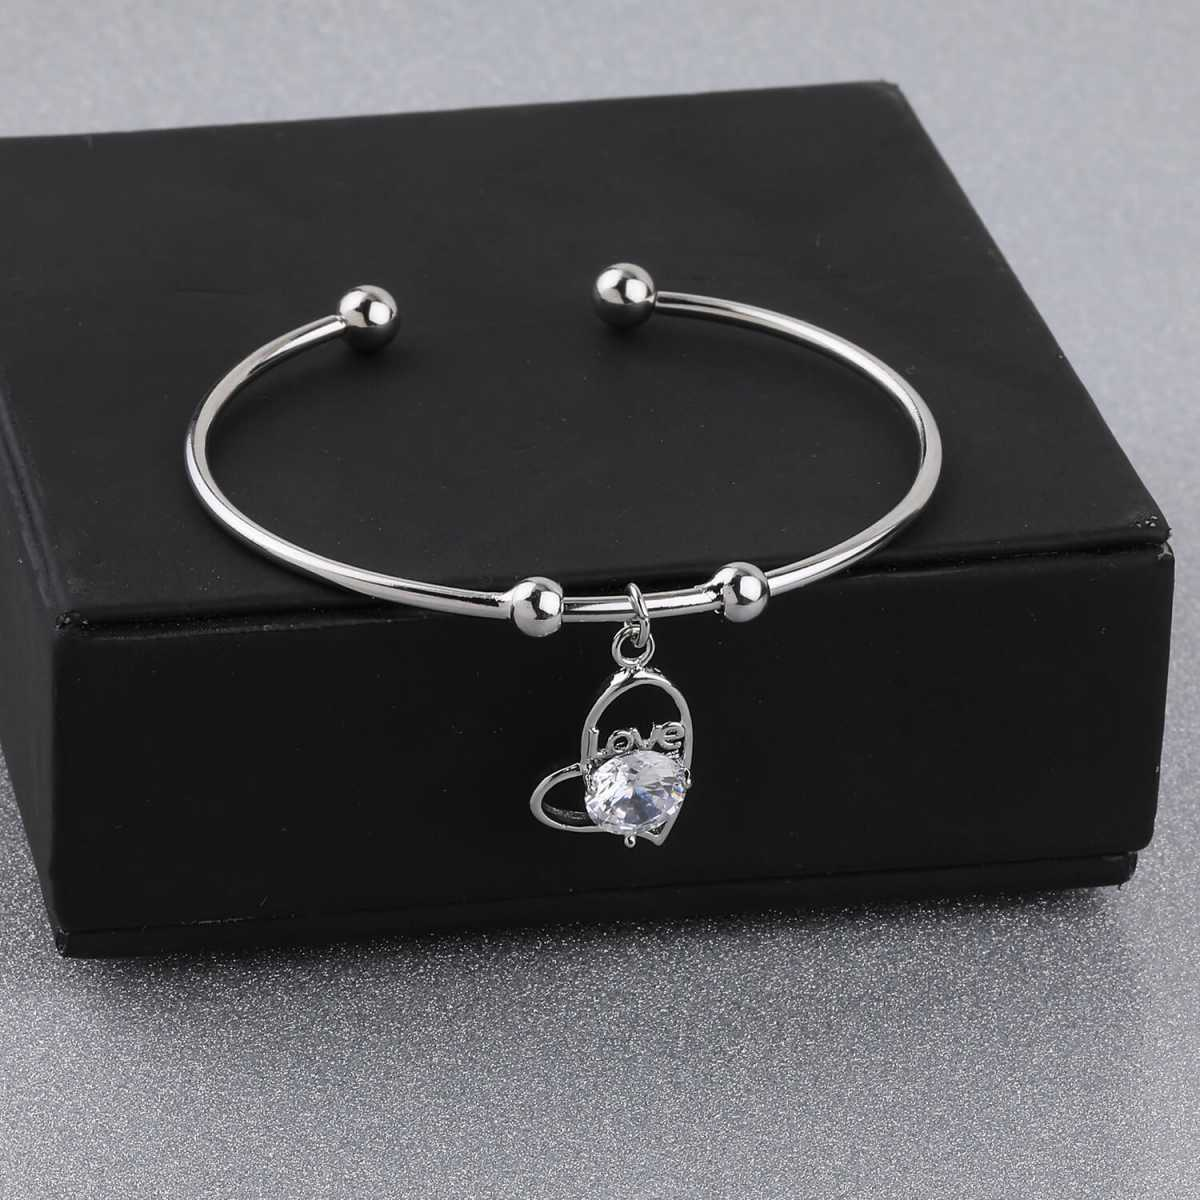 SILVER SHINE Delicated Adjustable Heart Shape Bracelet With Daimond For Women Girls